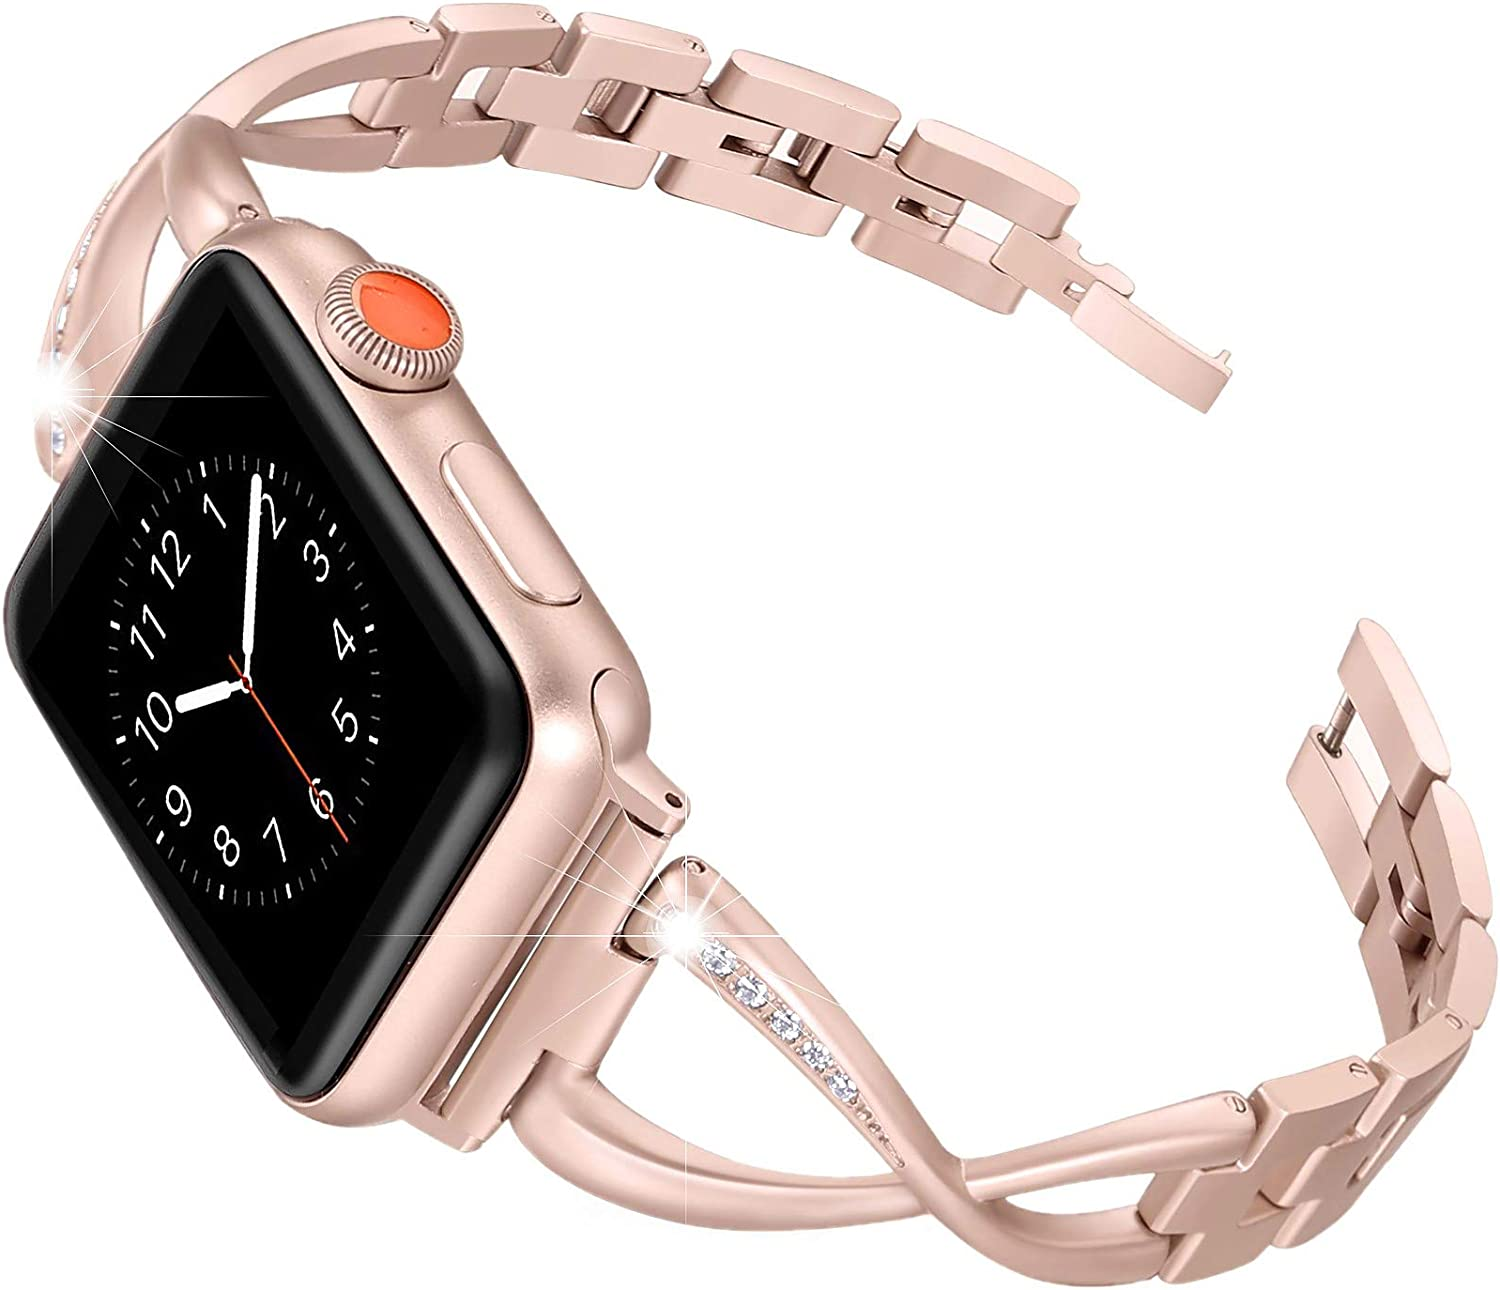 Secbolt Bands Compatible with Apple Watch Band 42mm 44mm Iwatch Series 6/5/4/3/2/1 SE Women Dressy Jewelry Stainless Steel Accessories Wristband Strap, Gold